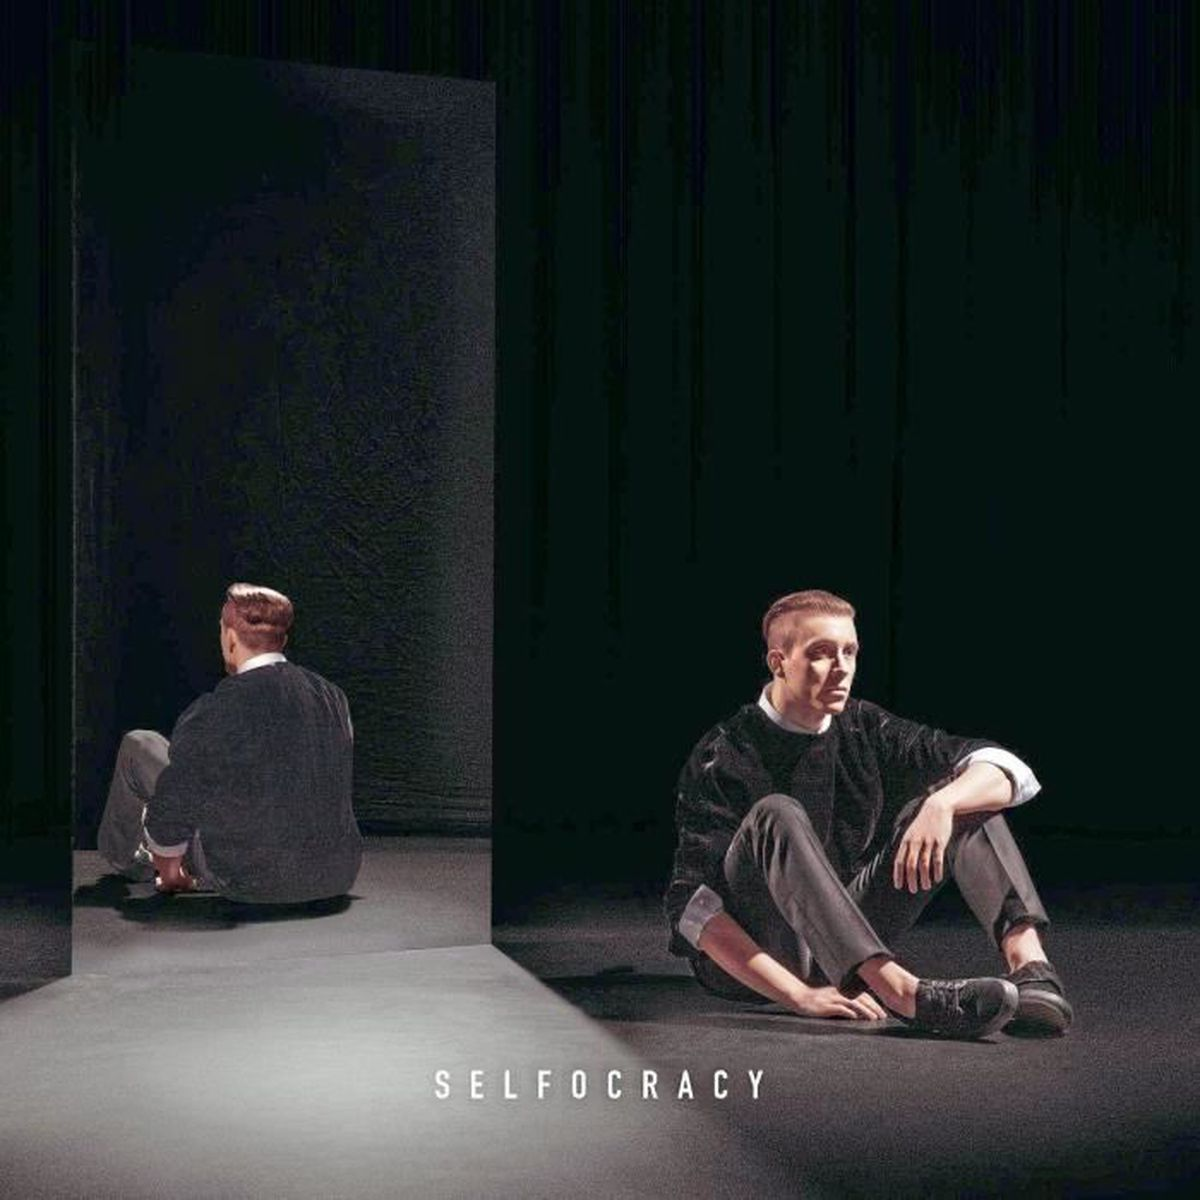 Loic Nottet Selfocracy Album Cd 2017 Achat Cd Cd